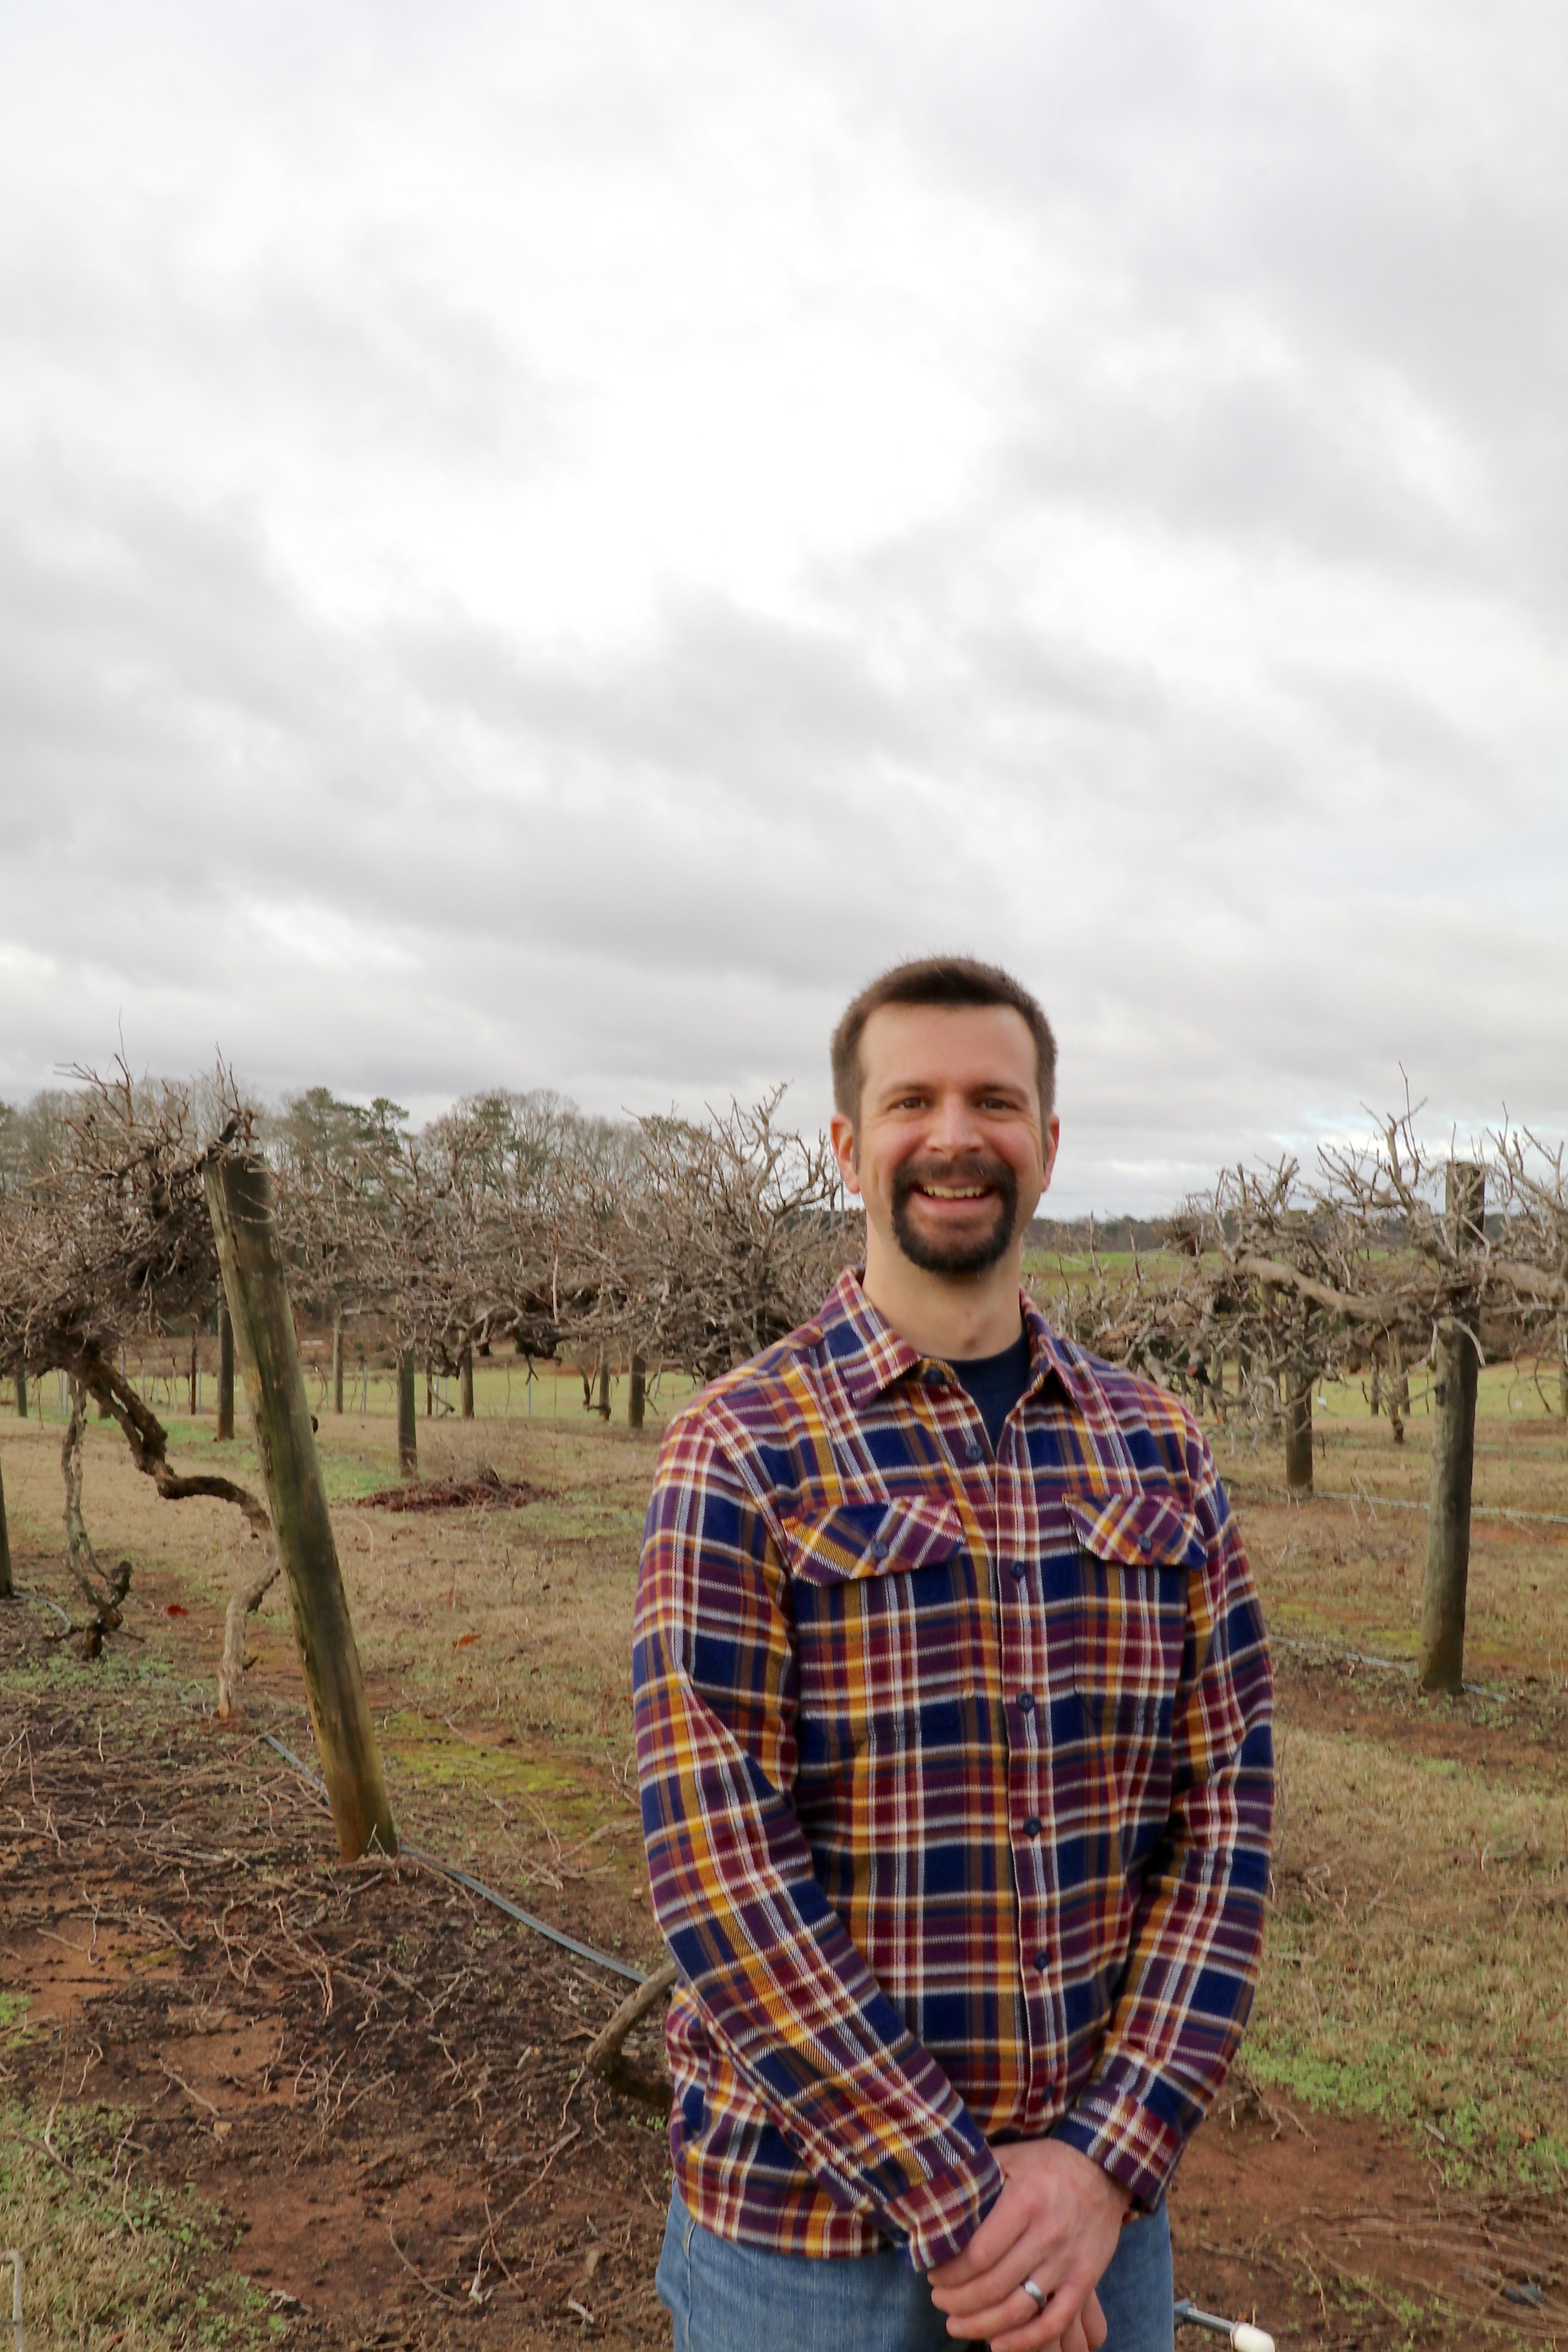 This year, viticulture specialist Cain Hickey will be recognized for his contributions to Georgia's burgeoning wine industry by the publishers of Fruit Growers News and Vegetable Growers News.